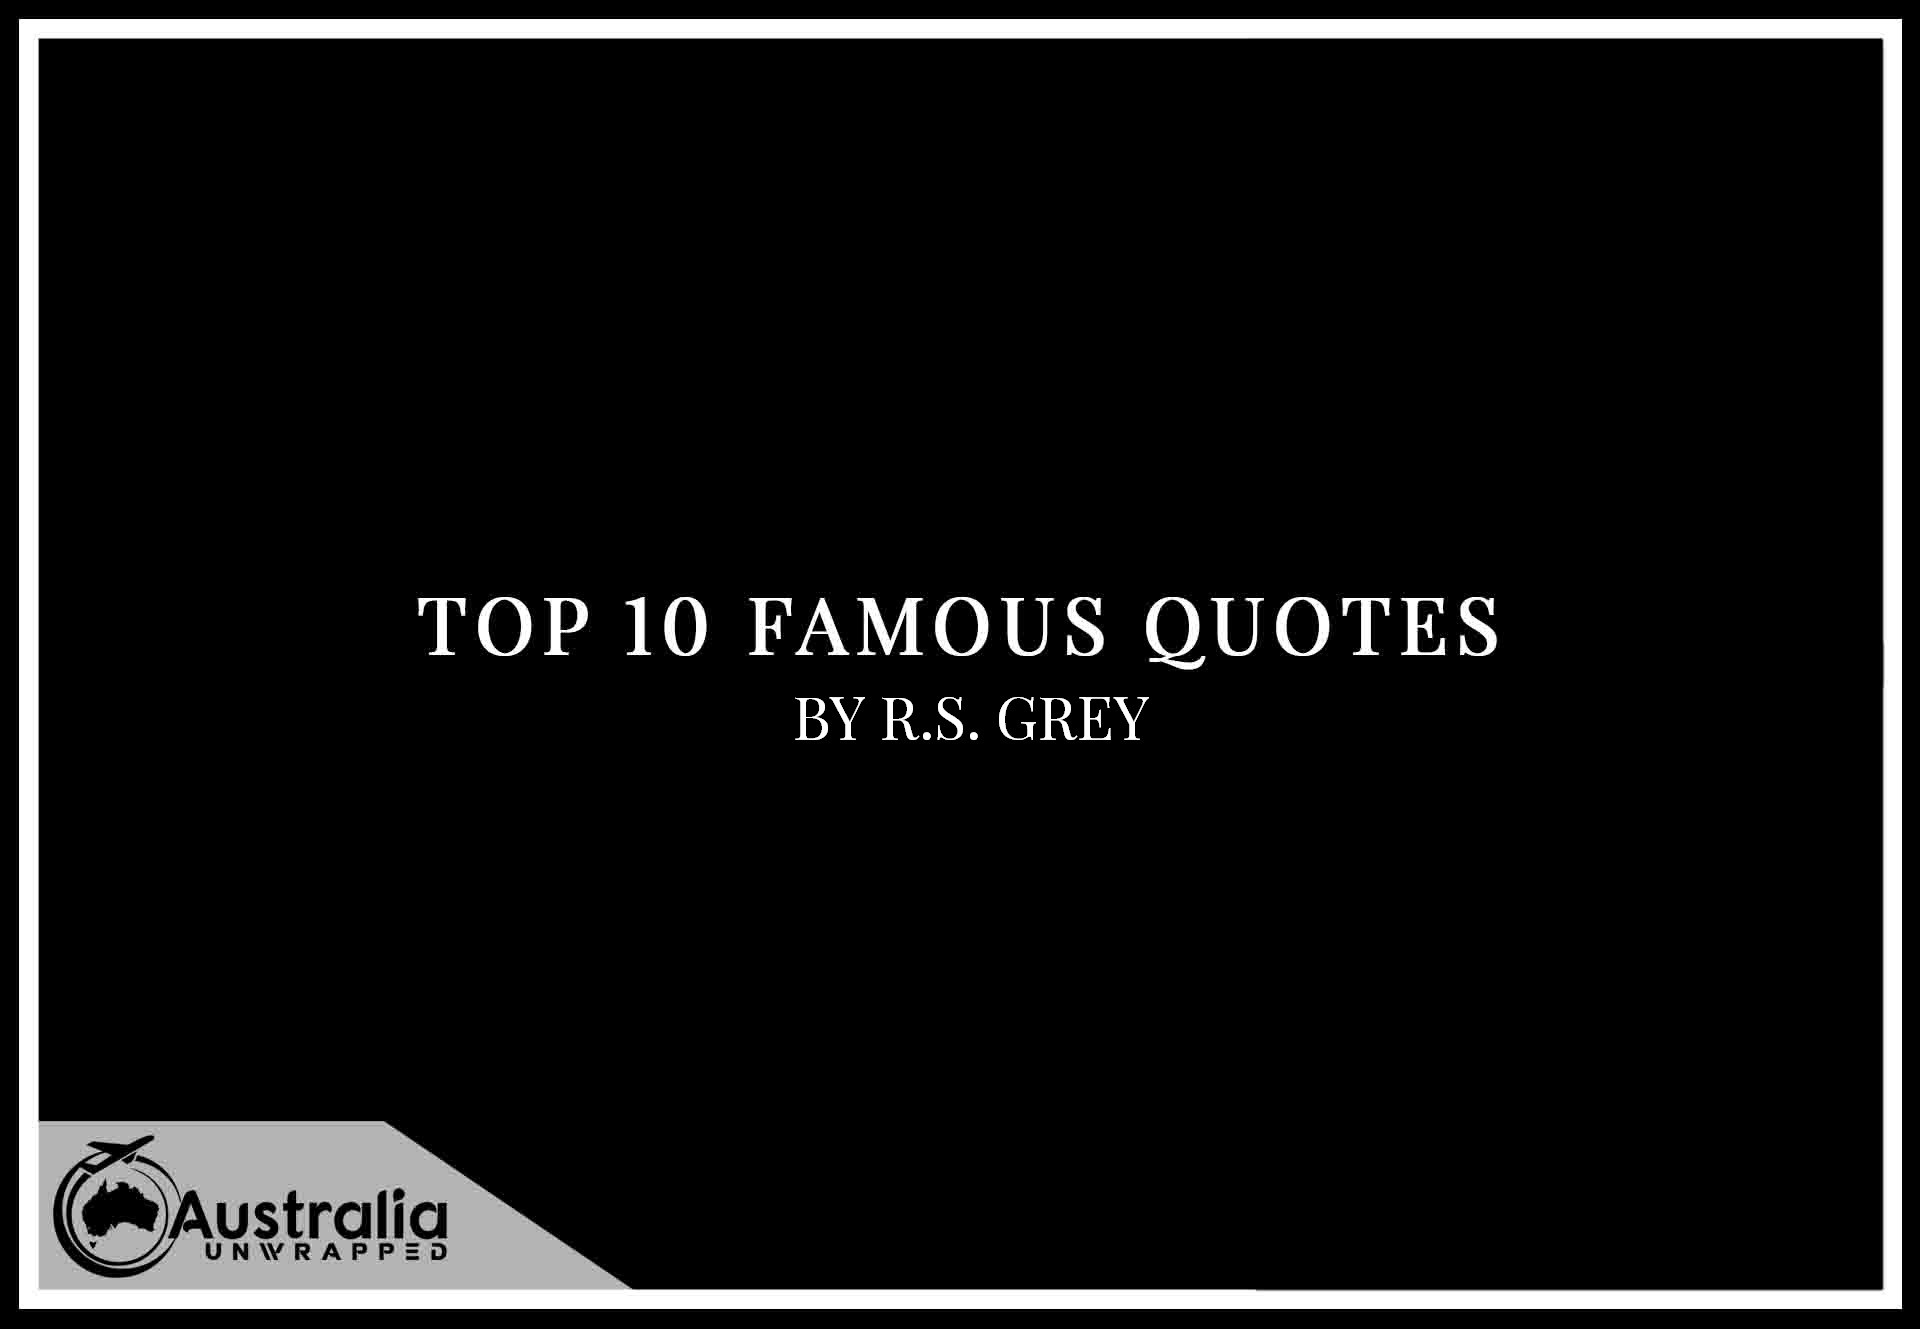 Top 10 Famous Quotes by Author R.S. Grey